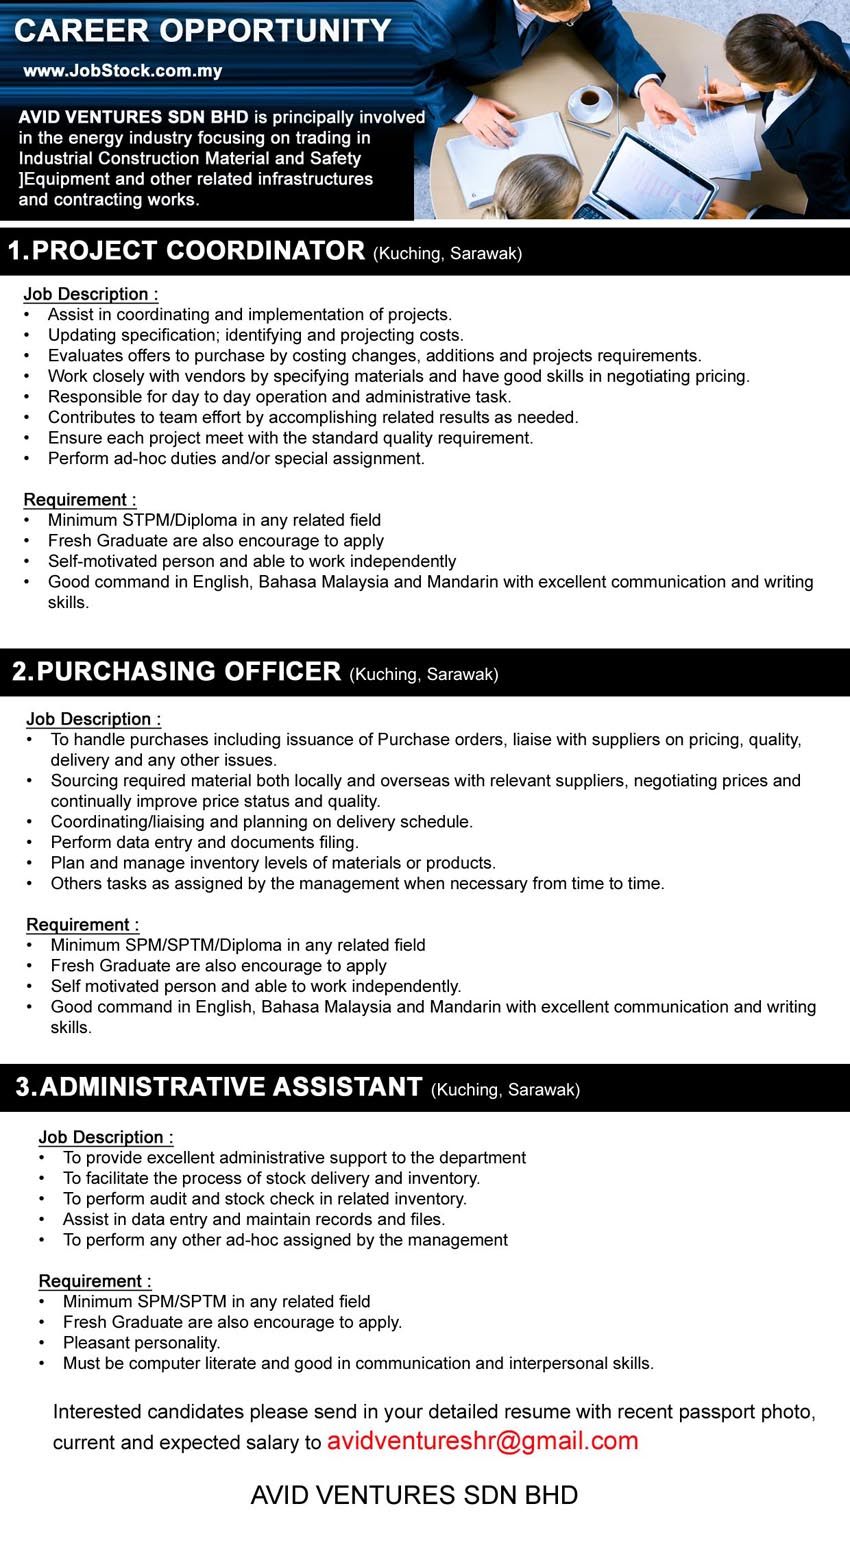 Administrative assistant salary free image – Purchasing Officer Job Description